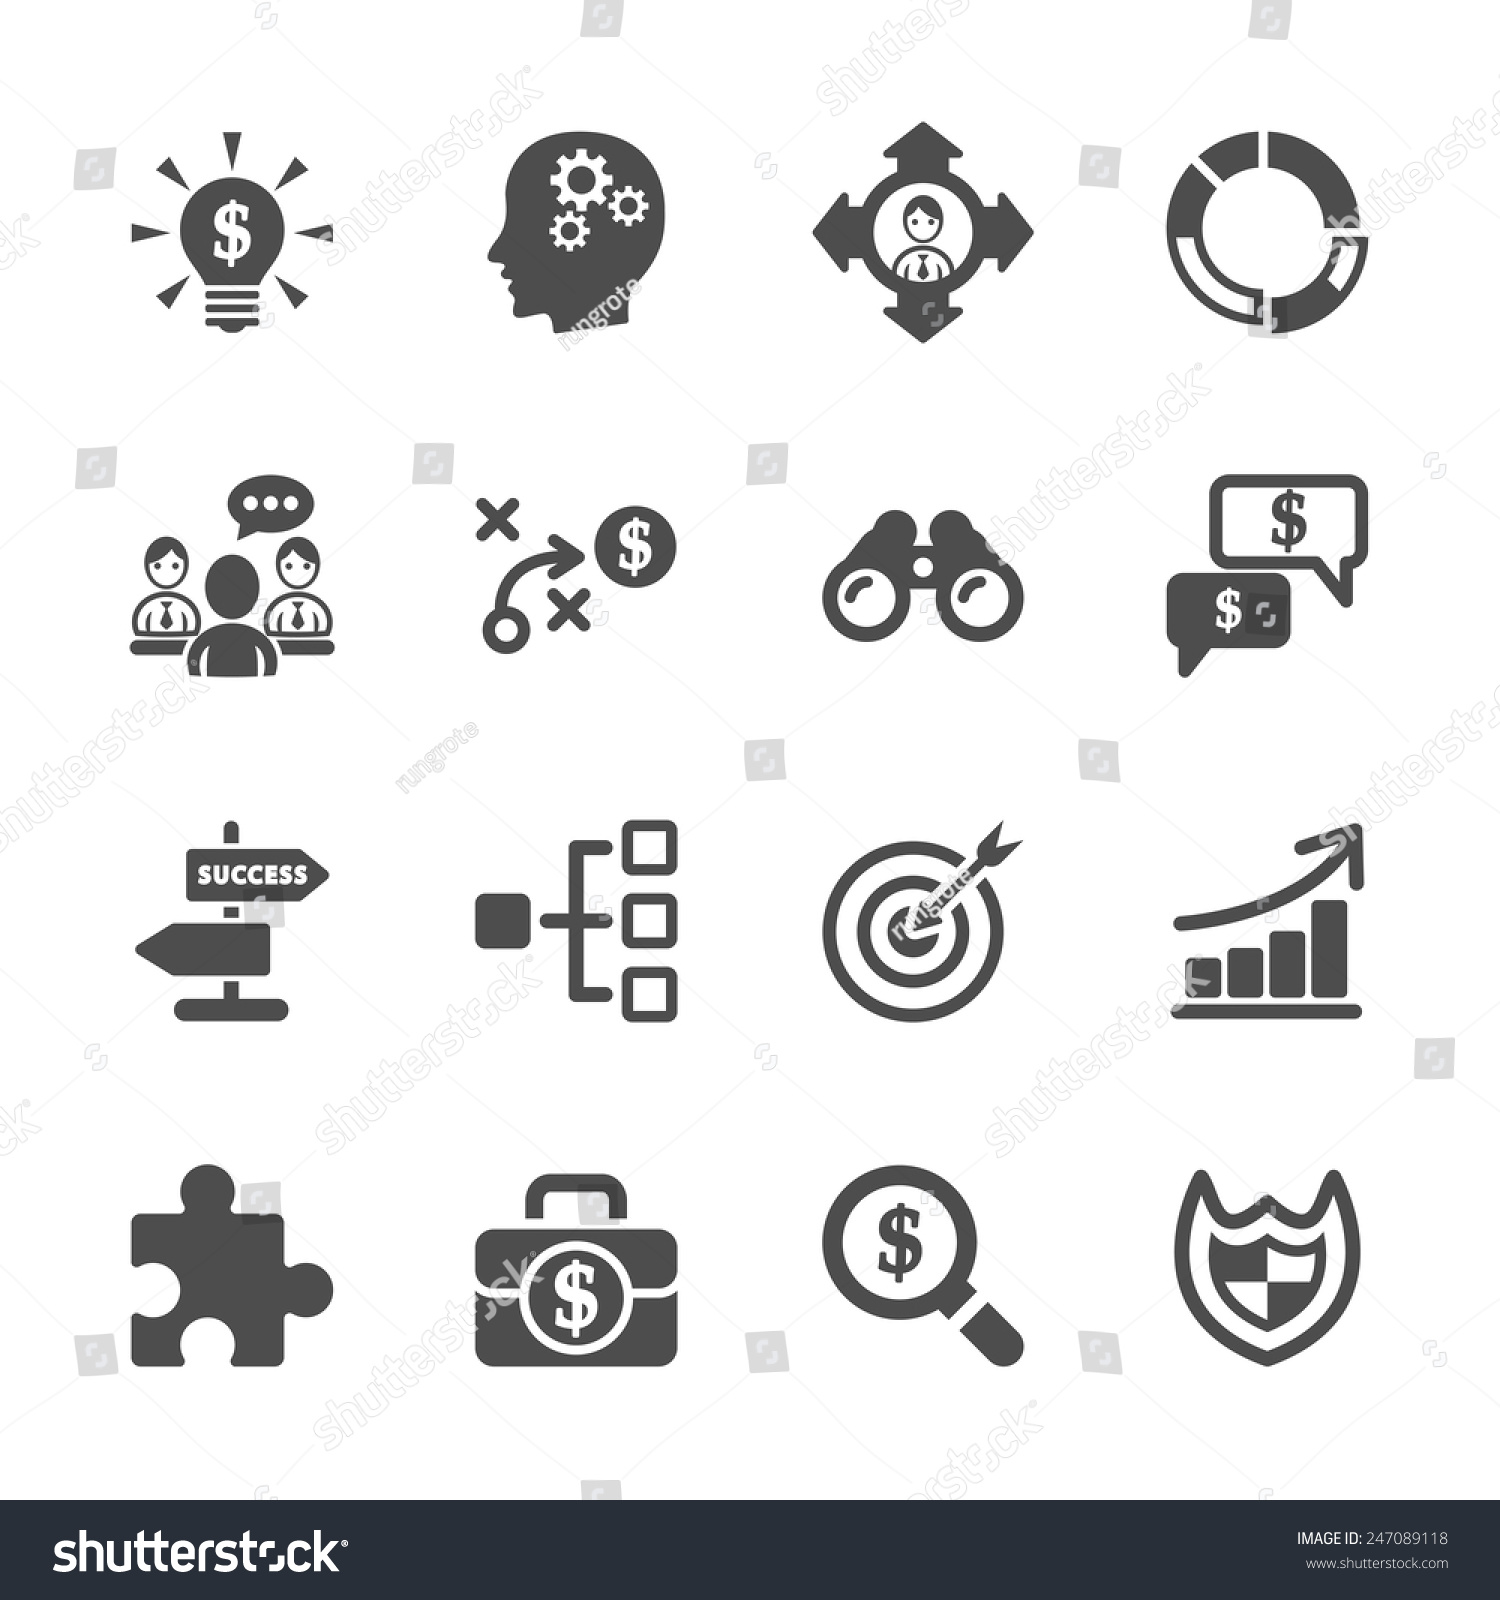 Pricing Strategy Icon: Business Strategy Icon Set, Vector Eps10.